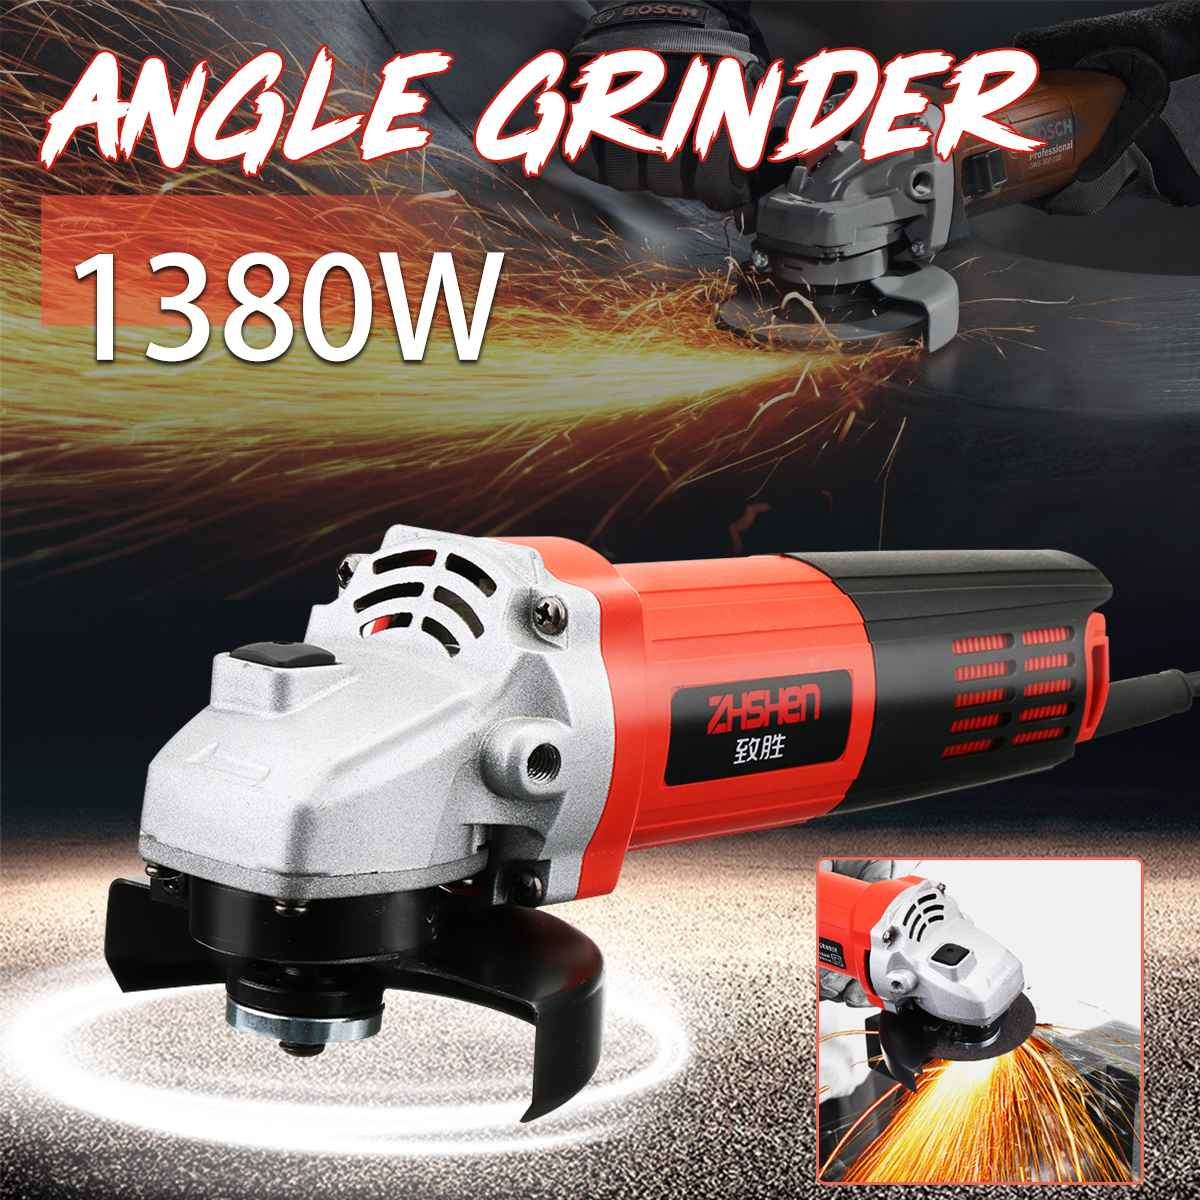 220V/50Hz 1380W 11000r/min Angle Grinder Electric Angle Grinding Metal Wood  Cutting and grinding Machine  Power Tool220V/50Hz 1380W 11000r/min Angle Grinder Electric Angle Grinding Metal Wood  Cutting and grinding Machine  Power Tool